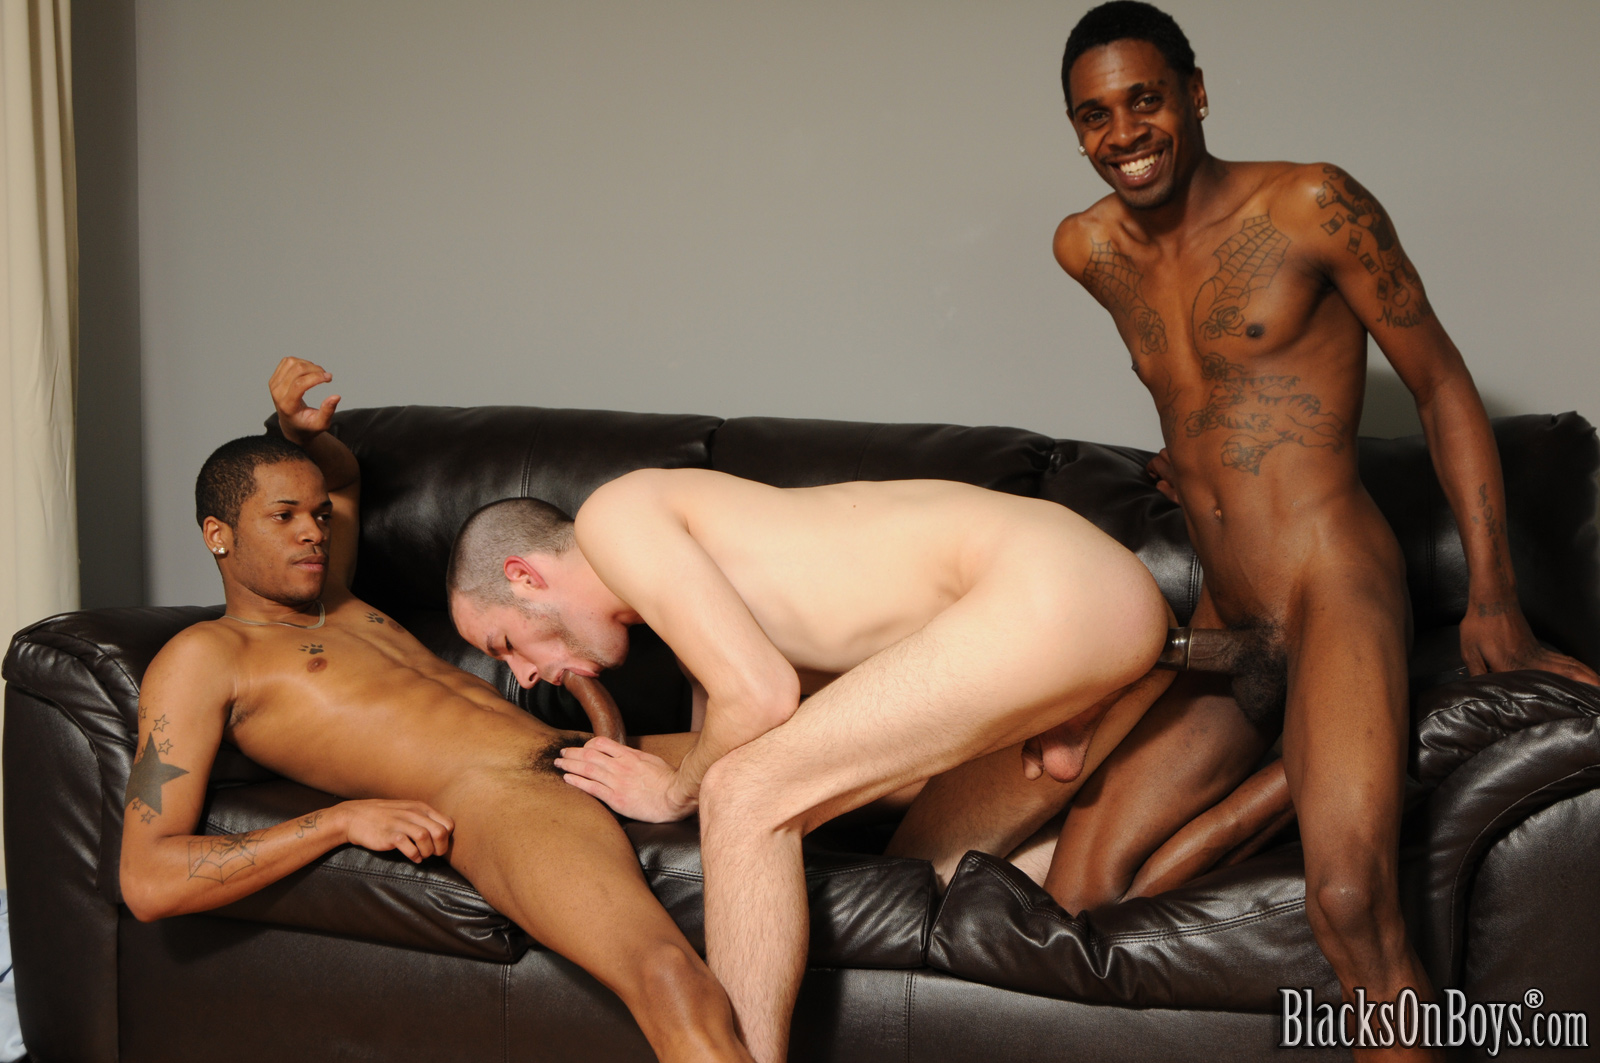 interracial-gay-men-in-yahoo-groups-young-dumb-naked-little-girls